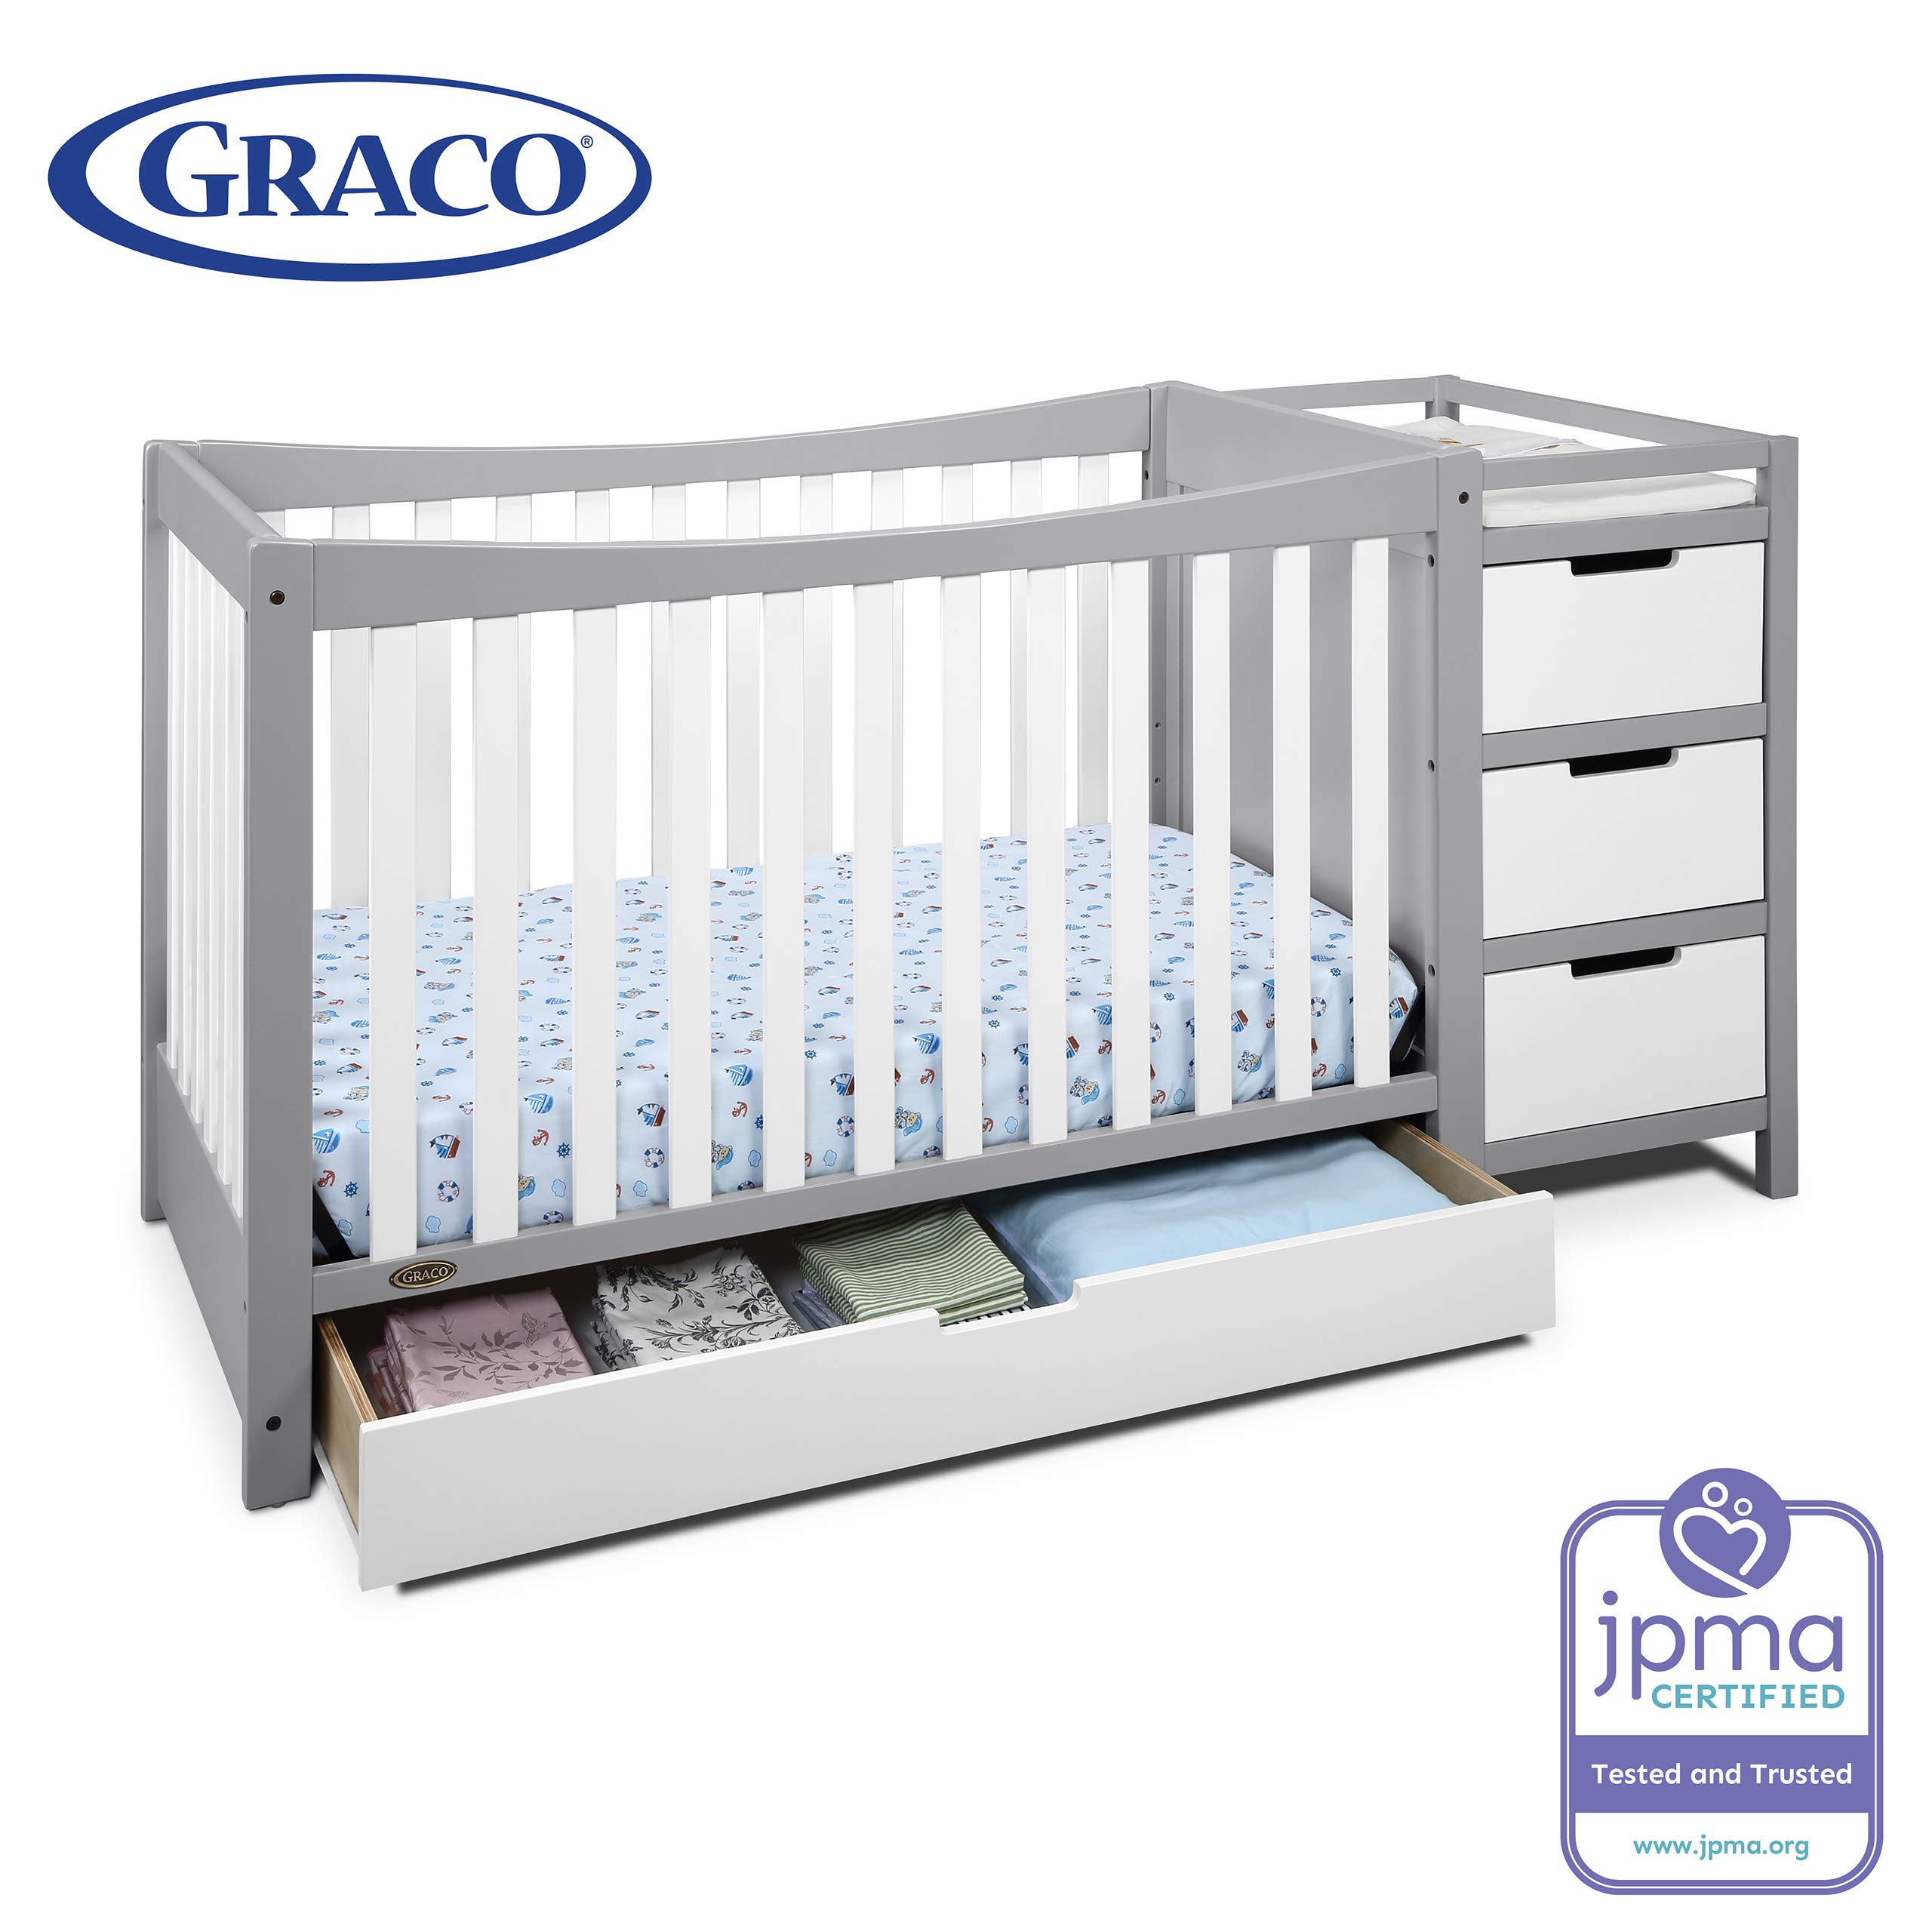 Graco Remi 4-in-1 Convertible Crib and Changer, Pebble Gray/White, Easily Converts to Toddler Bed Day Bed or Full Bed, Three Position Adjustable Height Mattress, Assembly Req (Mattress Not Included) by Storkcraft